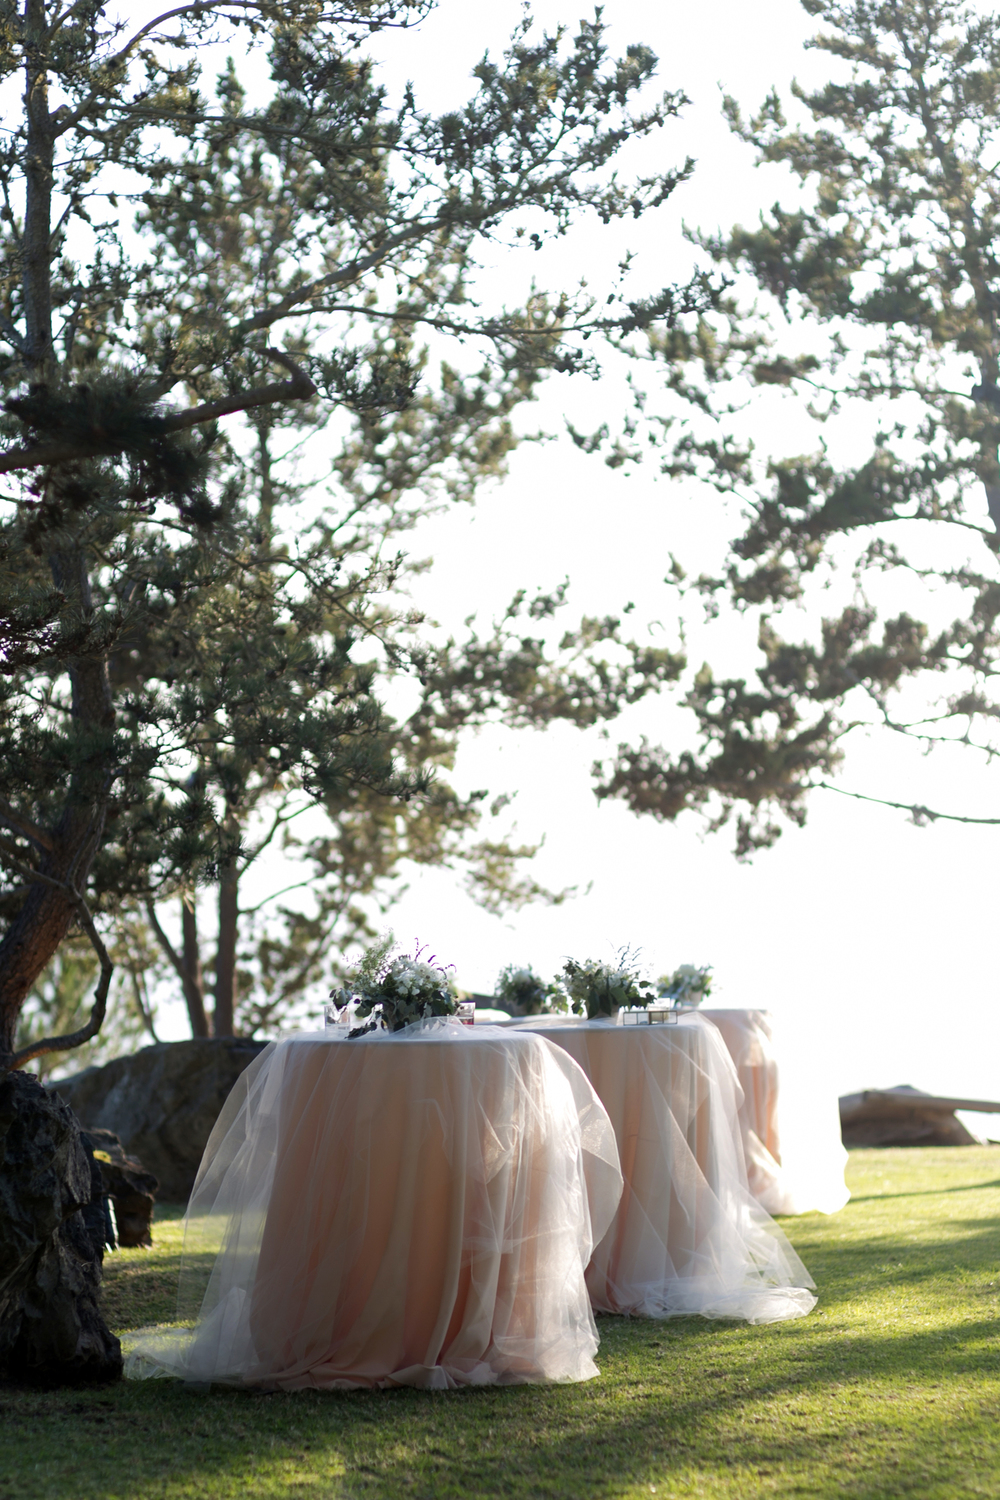 joy-thigpen-wedding-stylist-designer-planning-planner-destination-beach-magazine-feature-big-sur-destination-wedding-paion-10.jpg